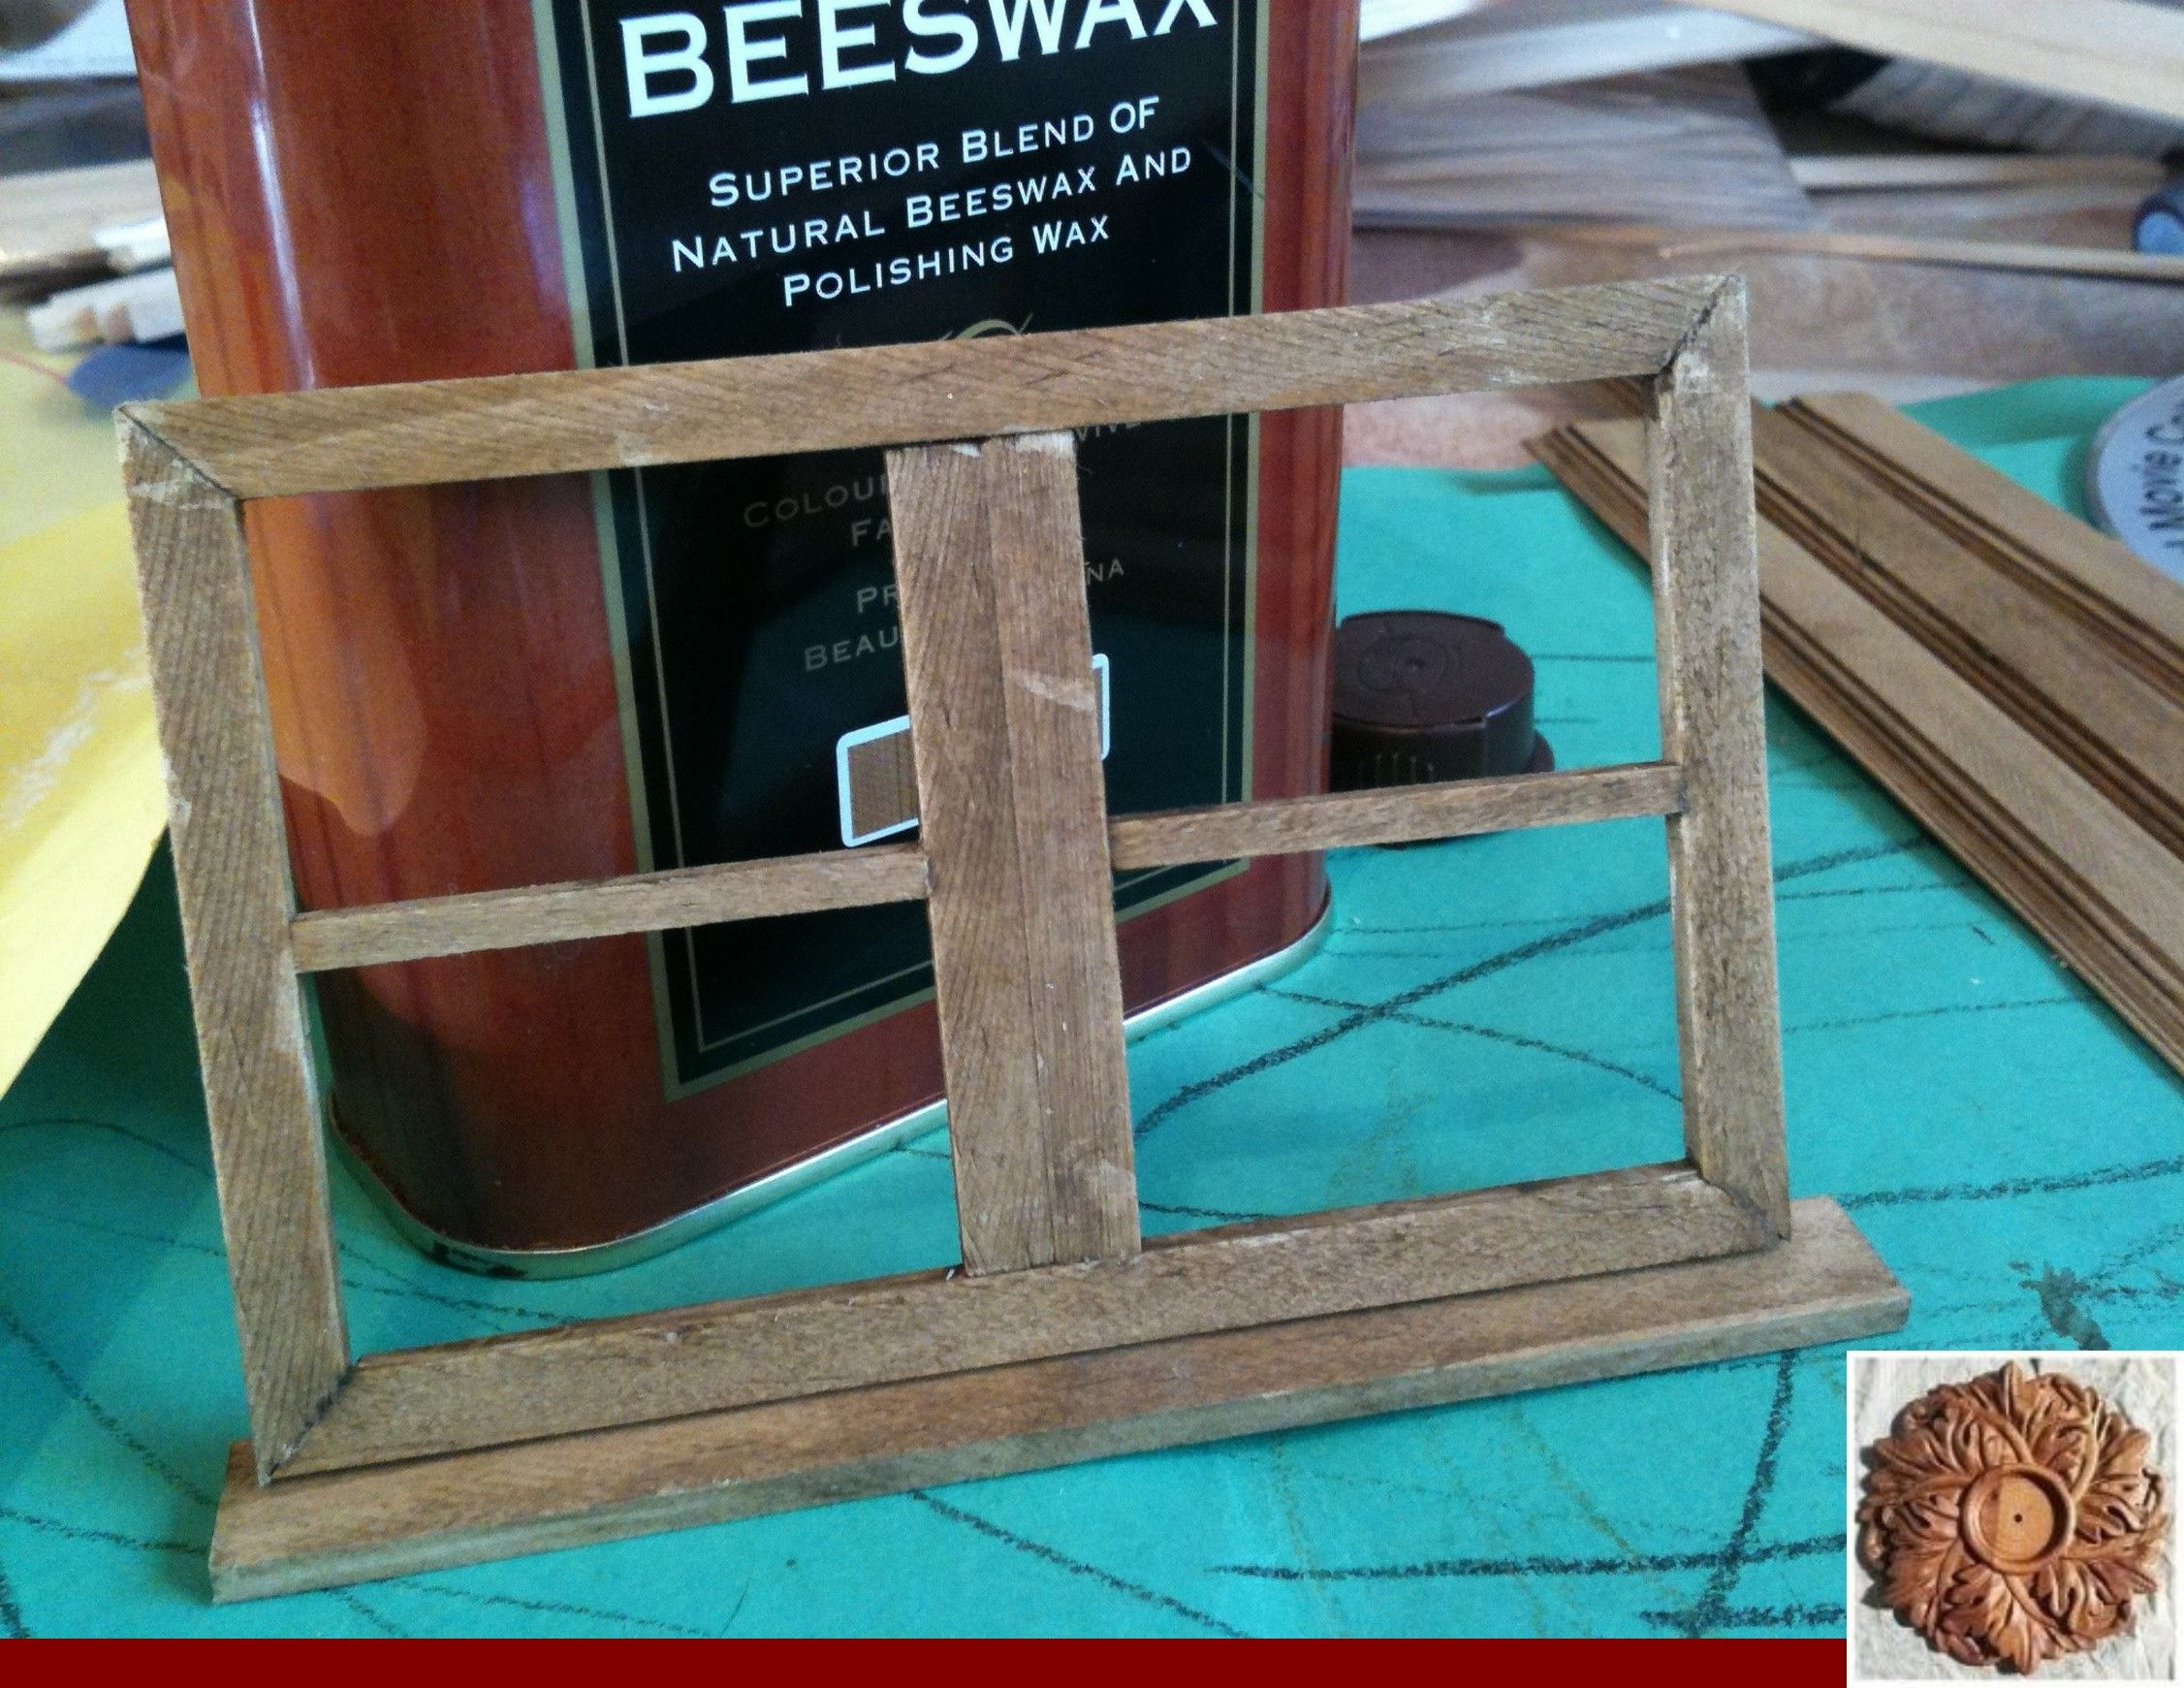 Learn about some woodworking projects and plans. Wood projects lounge chair. #woodworking #projects #reclaimed #woodworkingprojectschair